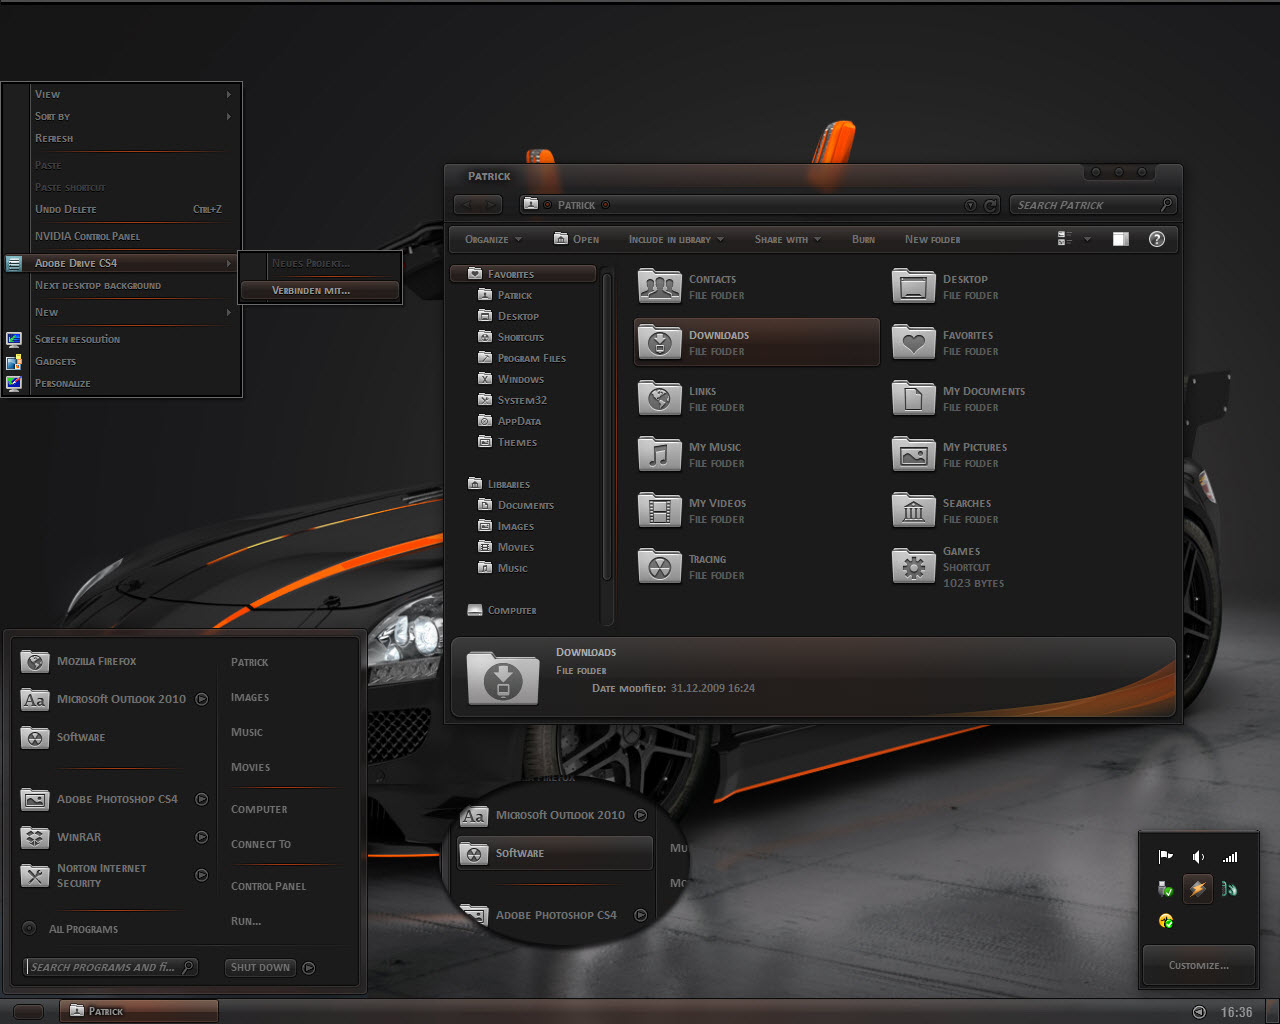 DARK AGILITY VISUAL STYLE FOR WINDOWS 71 @ 50+ Stunning Windows 7 Desktop Themes